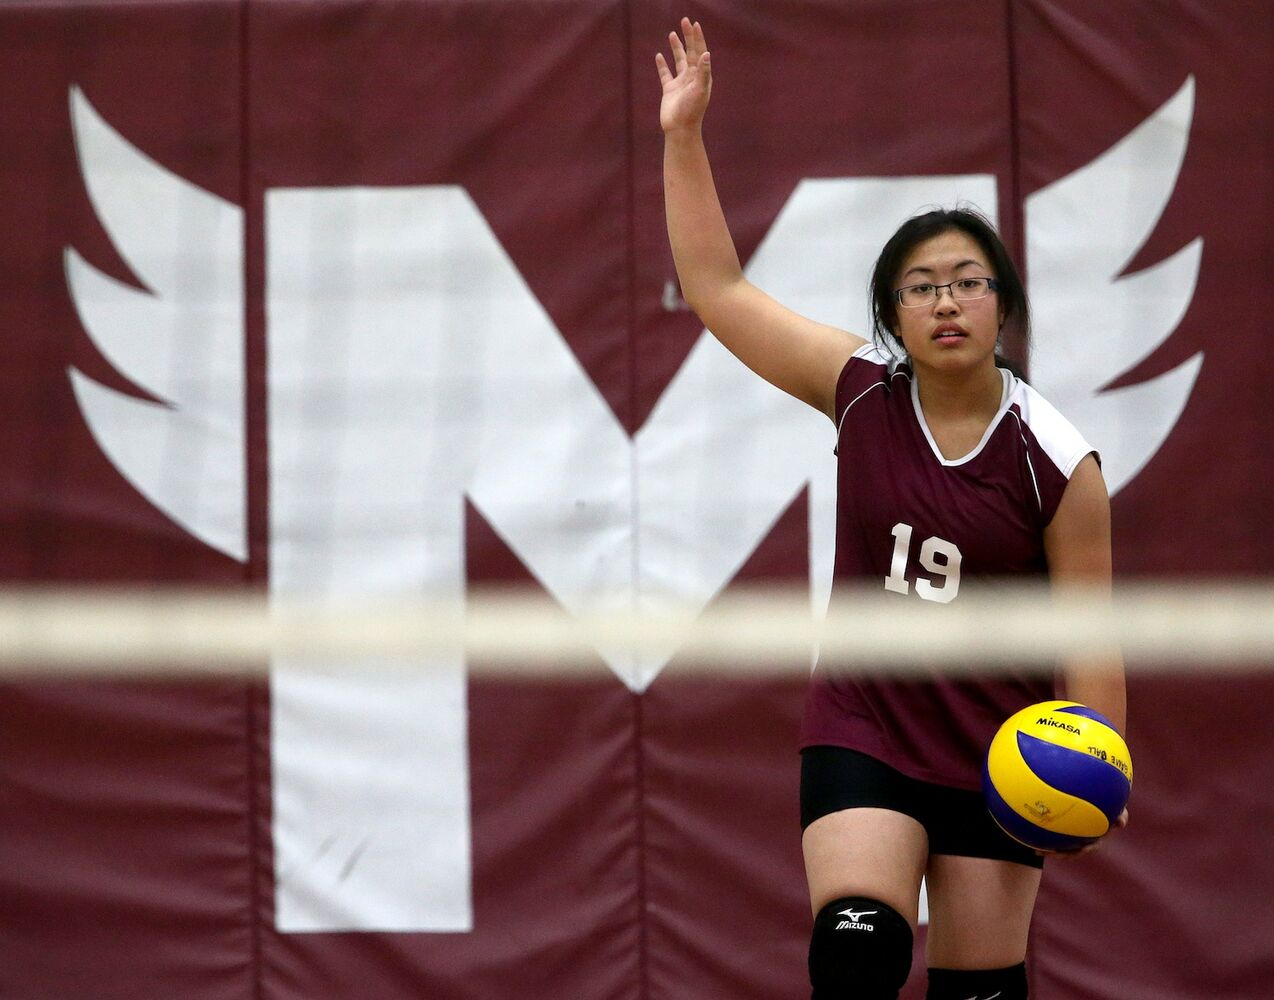 DMCI Maroons' Jacquelynn Joseph prepares to serve. (TREVOR HAGAN / WINNIPEG FREE PRESS)